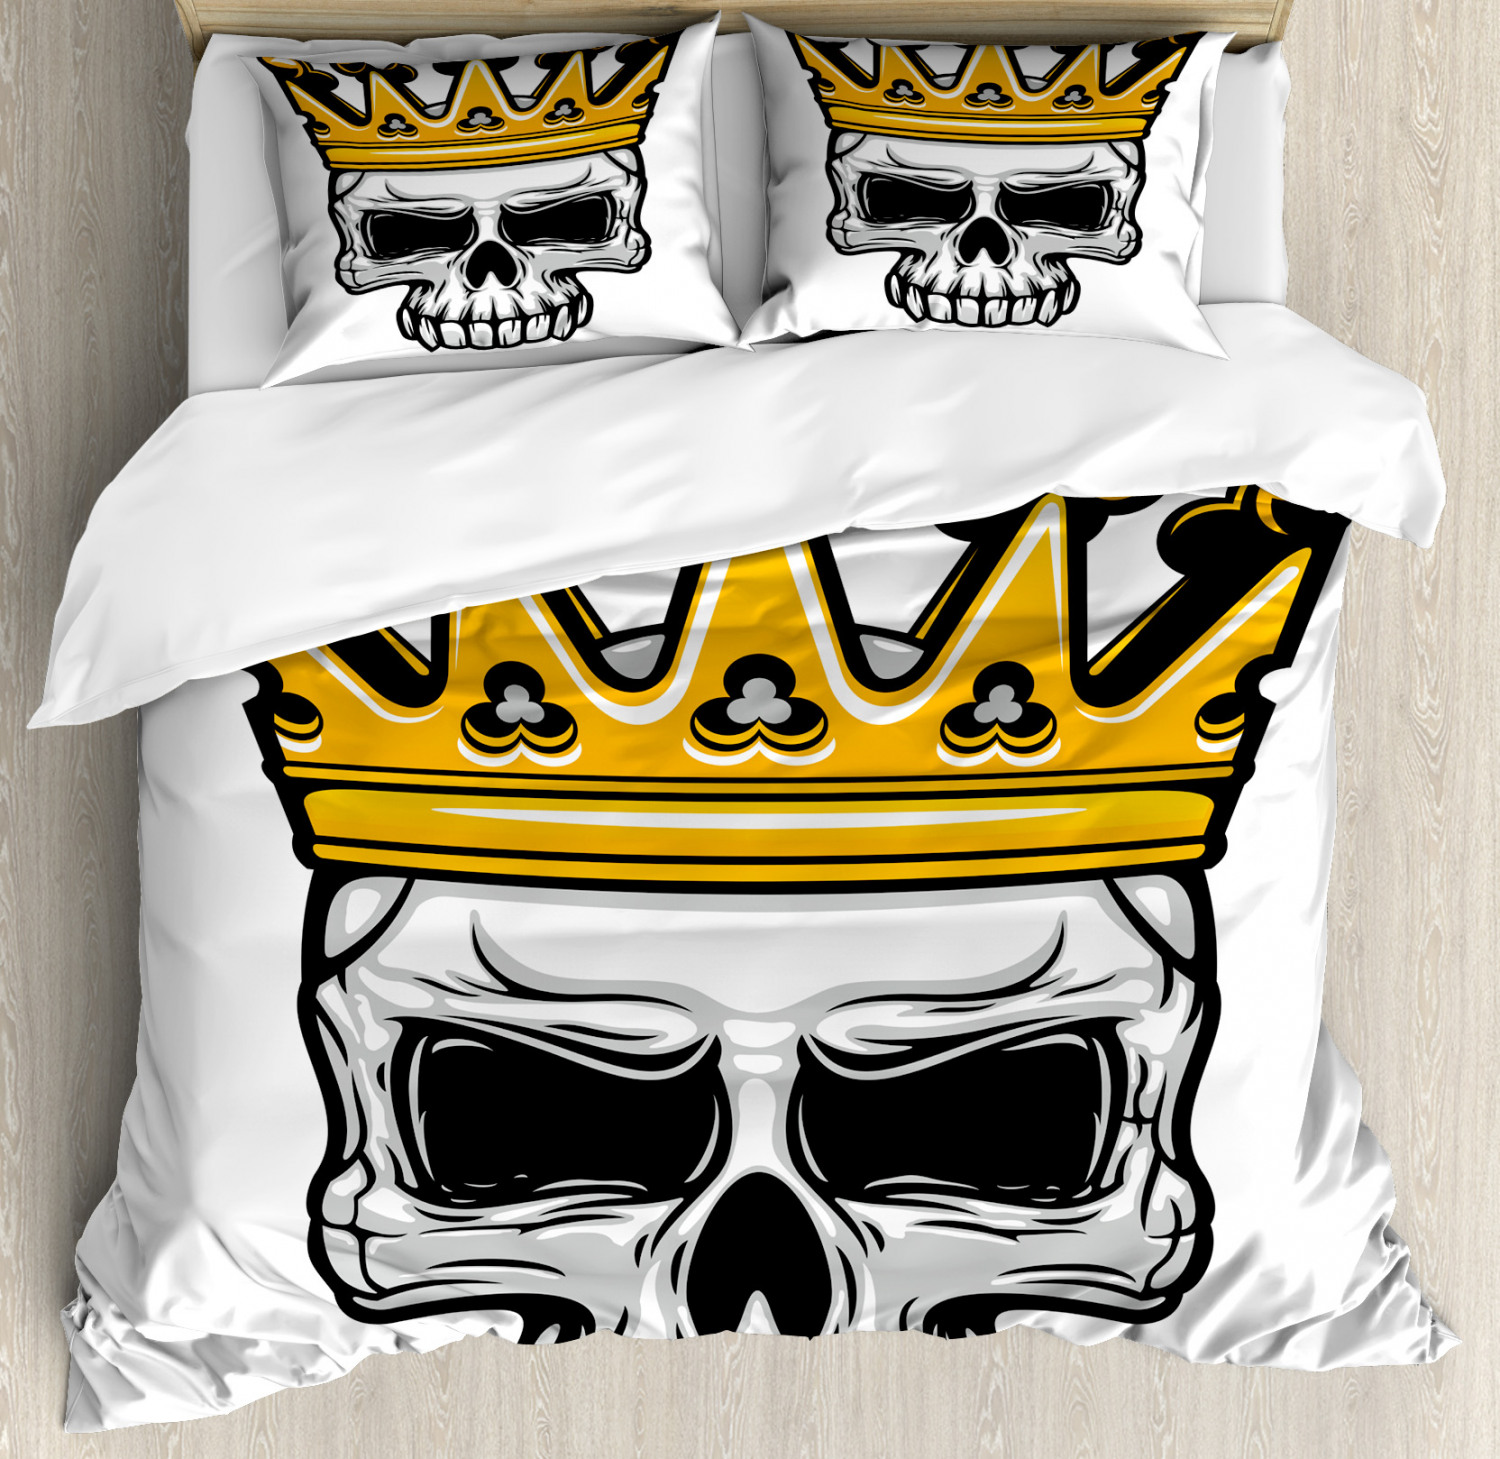 King Duvet Cover Set with Pillow Shams Skull Cranium with Coronet Print